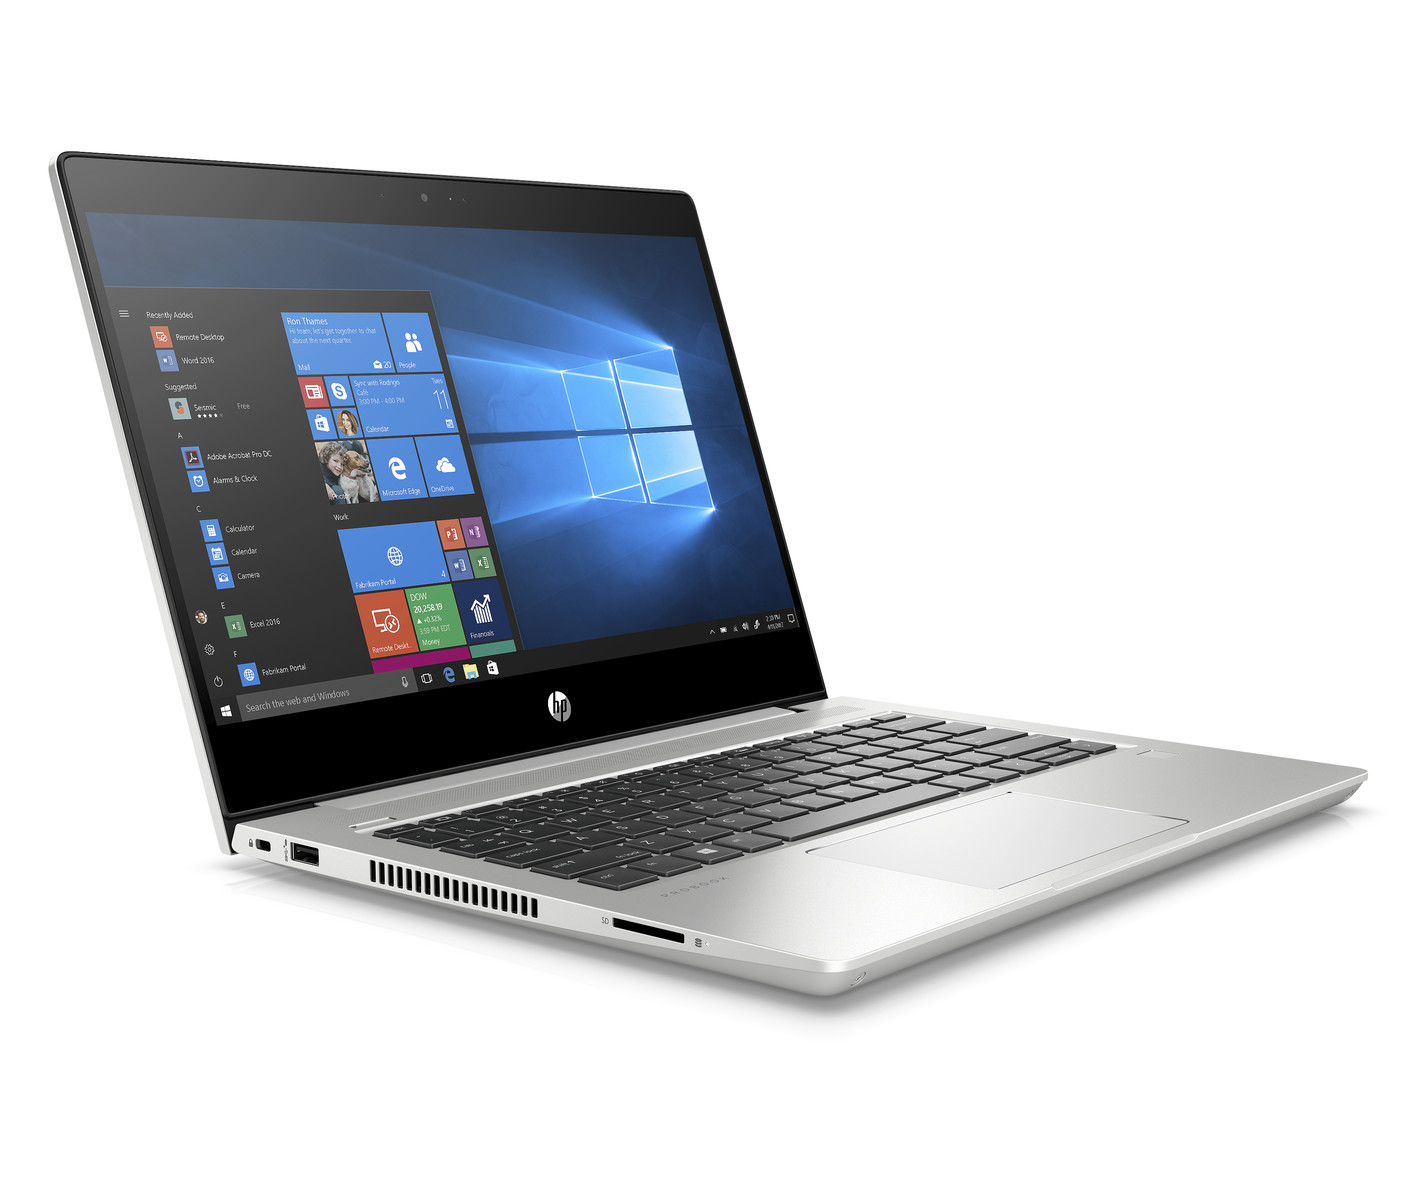 HP launches ProBook 430 G6, 440 G6, and 450 G6 with Whiskey Lake-U